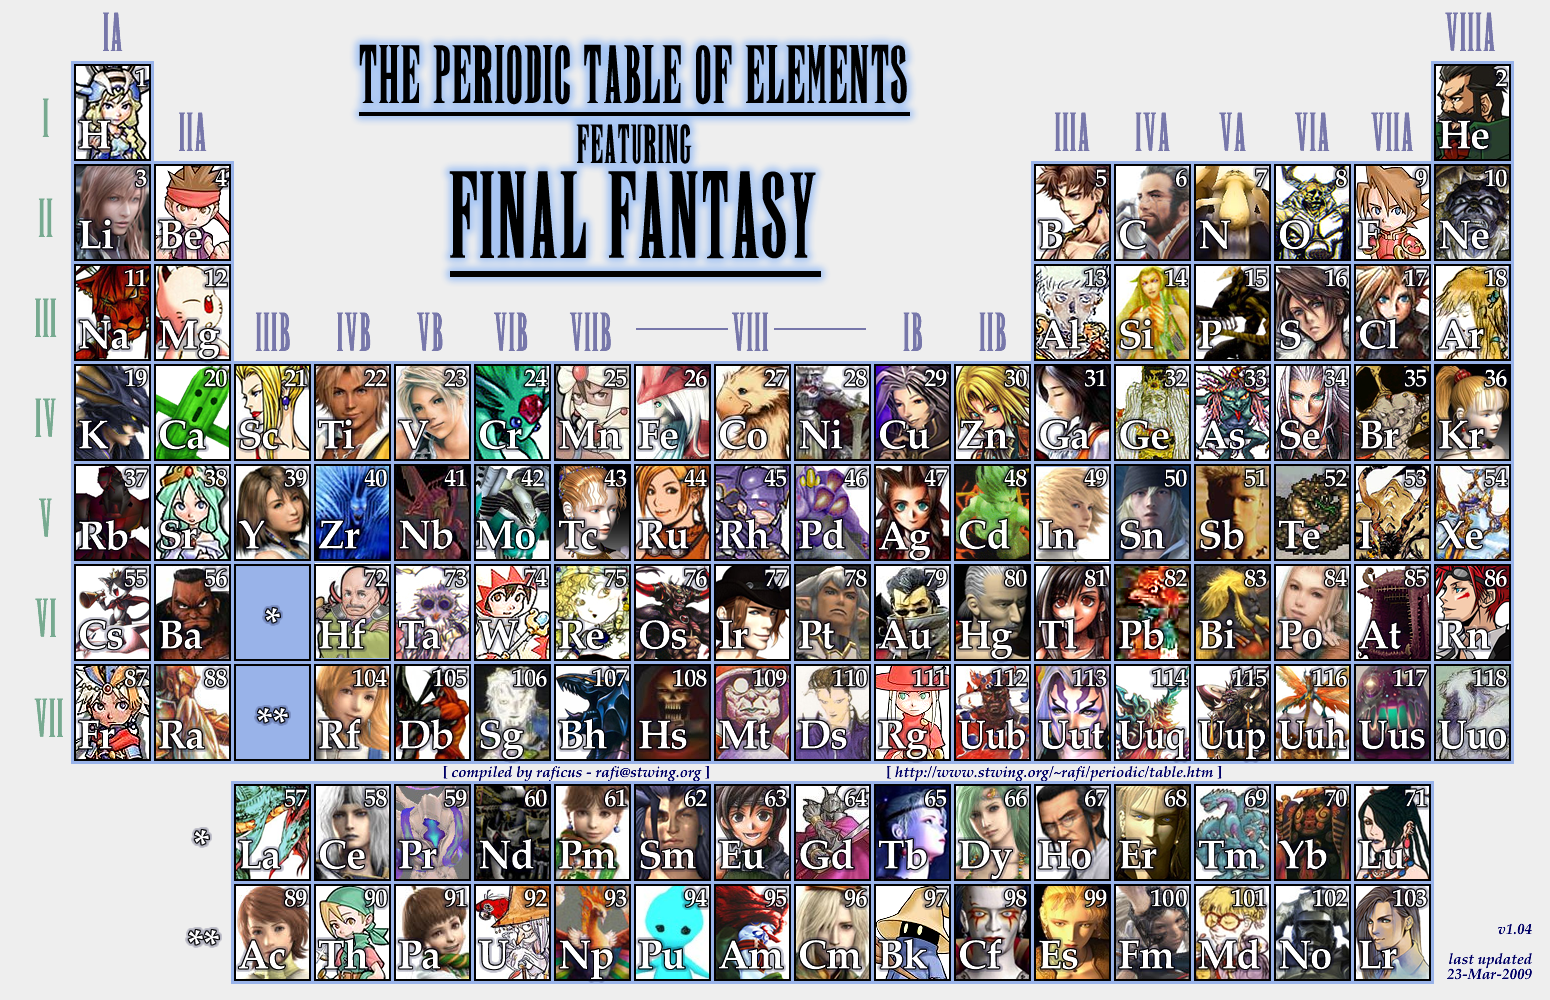 The world of raficus periodic table of elements featuring final fantasy the periodic table of elements below features heroes villains monsters summons and supporting characters from across the main series from final urtaz Image collections